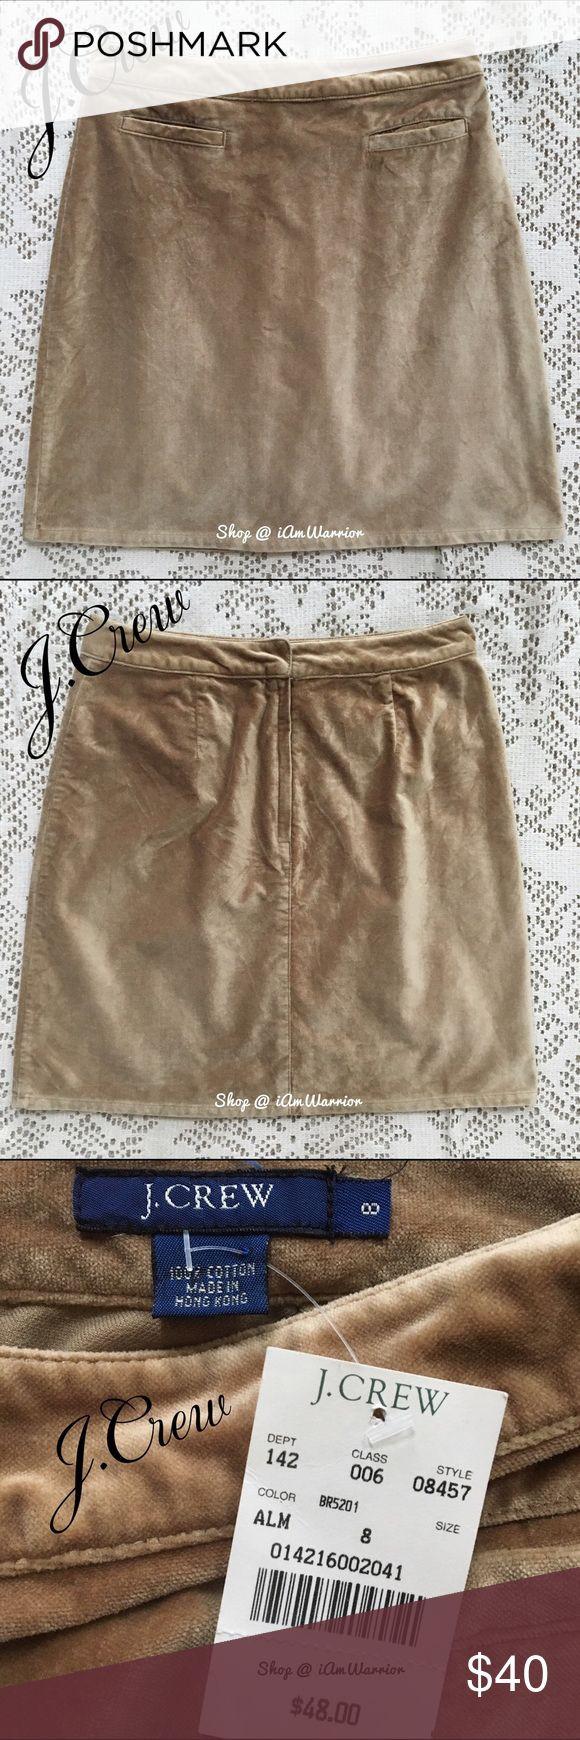 "🆕NWT J. Crew velvet mini skirt Reduced to lowest! NWT J. Crew velvet mini skirt. Color is called almond, and depending on the light it looks tan to warm caramel in color. Sits at natural waist (just shy of 14"" across), so fits a size 6 better. 20"" long, looks great with tights, boots and a cozy sweater. ❗Please read my recently updated 'about me and my closet' listing for pricing/policies. J. Crew Skirts Mini"